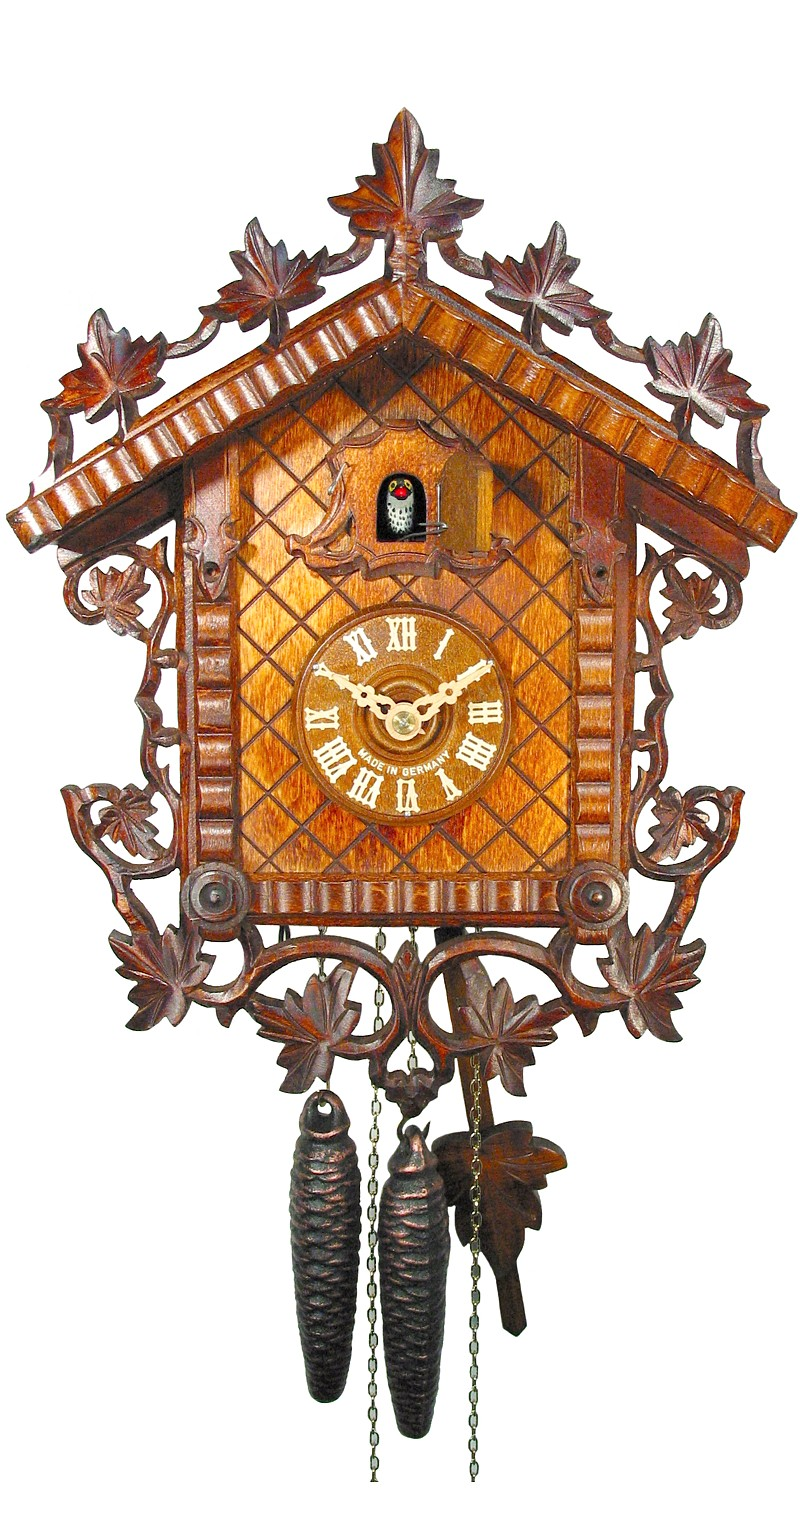 Cuckoo Clock 1885 Replication Rail Station Clock 1-Day Movement - Cuckoo Clock Meister